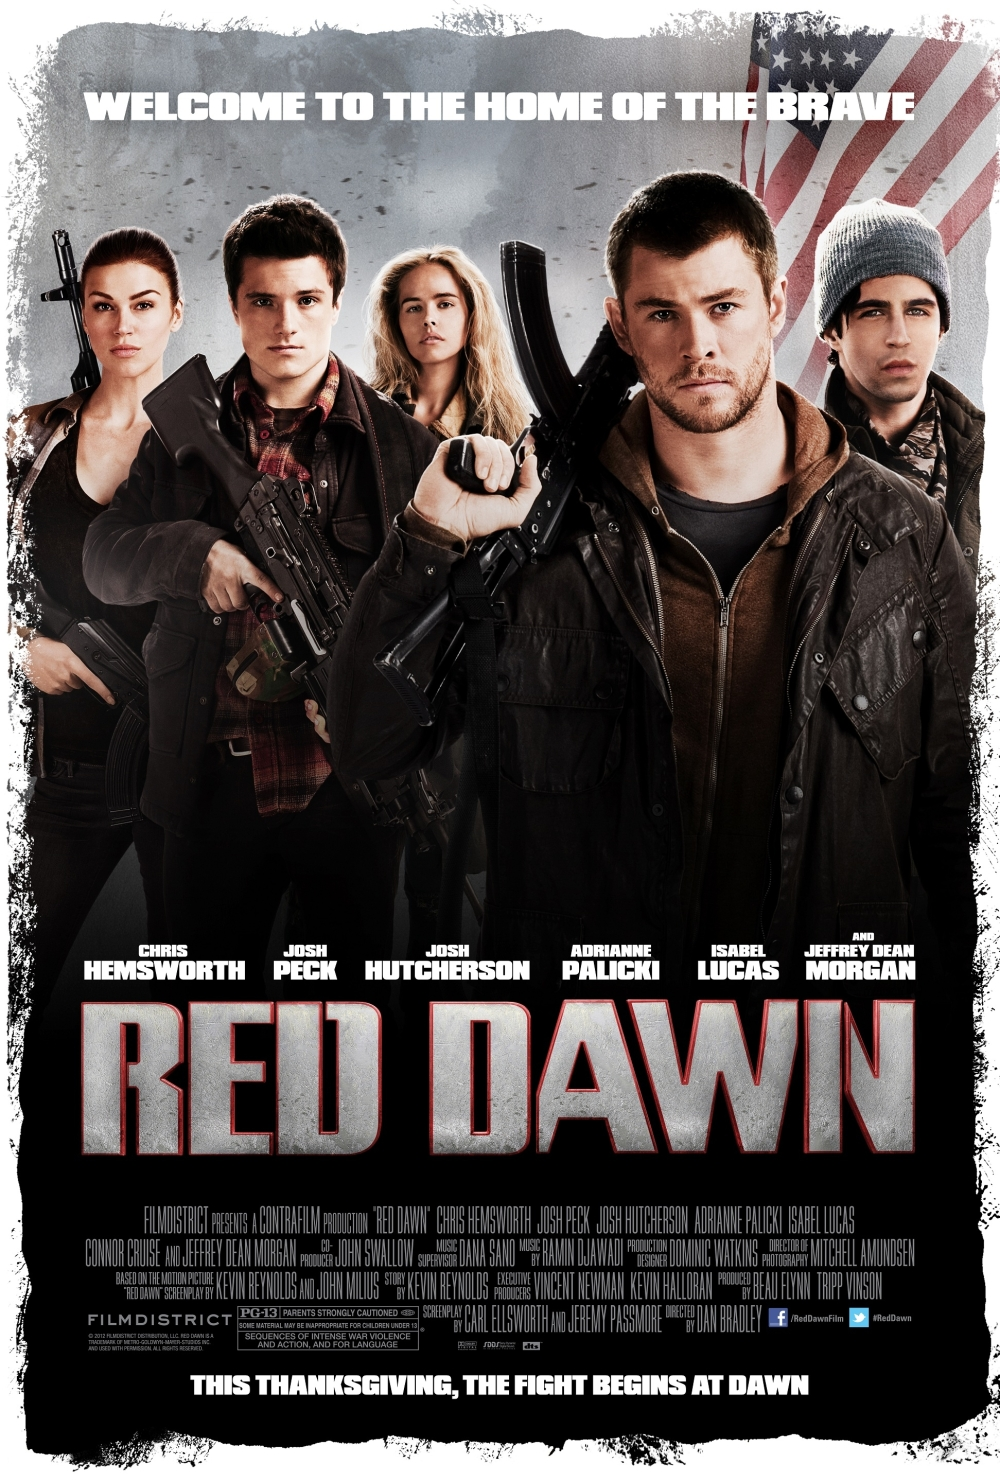 http://bestforfilm.com/wp-content/uploads/2012/08/Red-Dawn.jpg